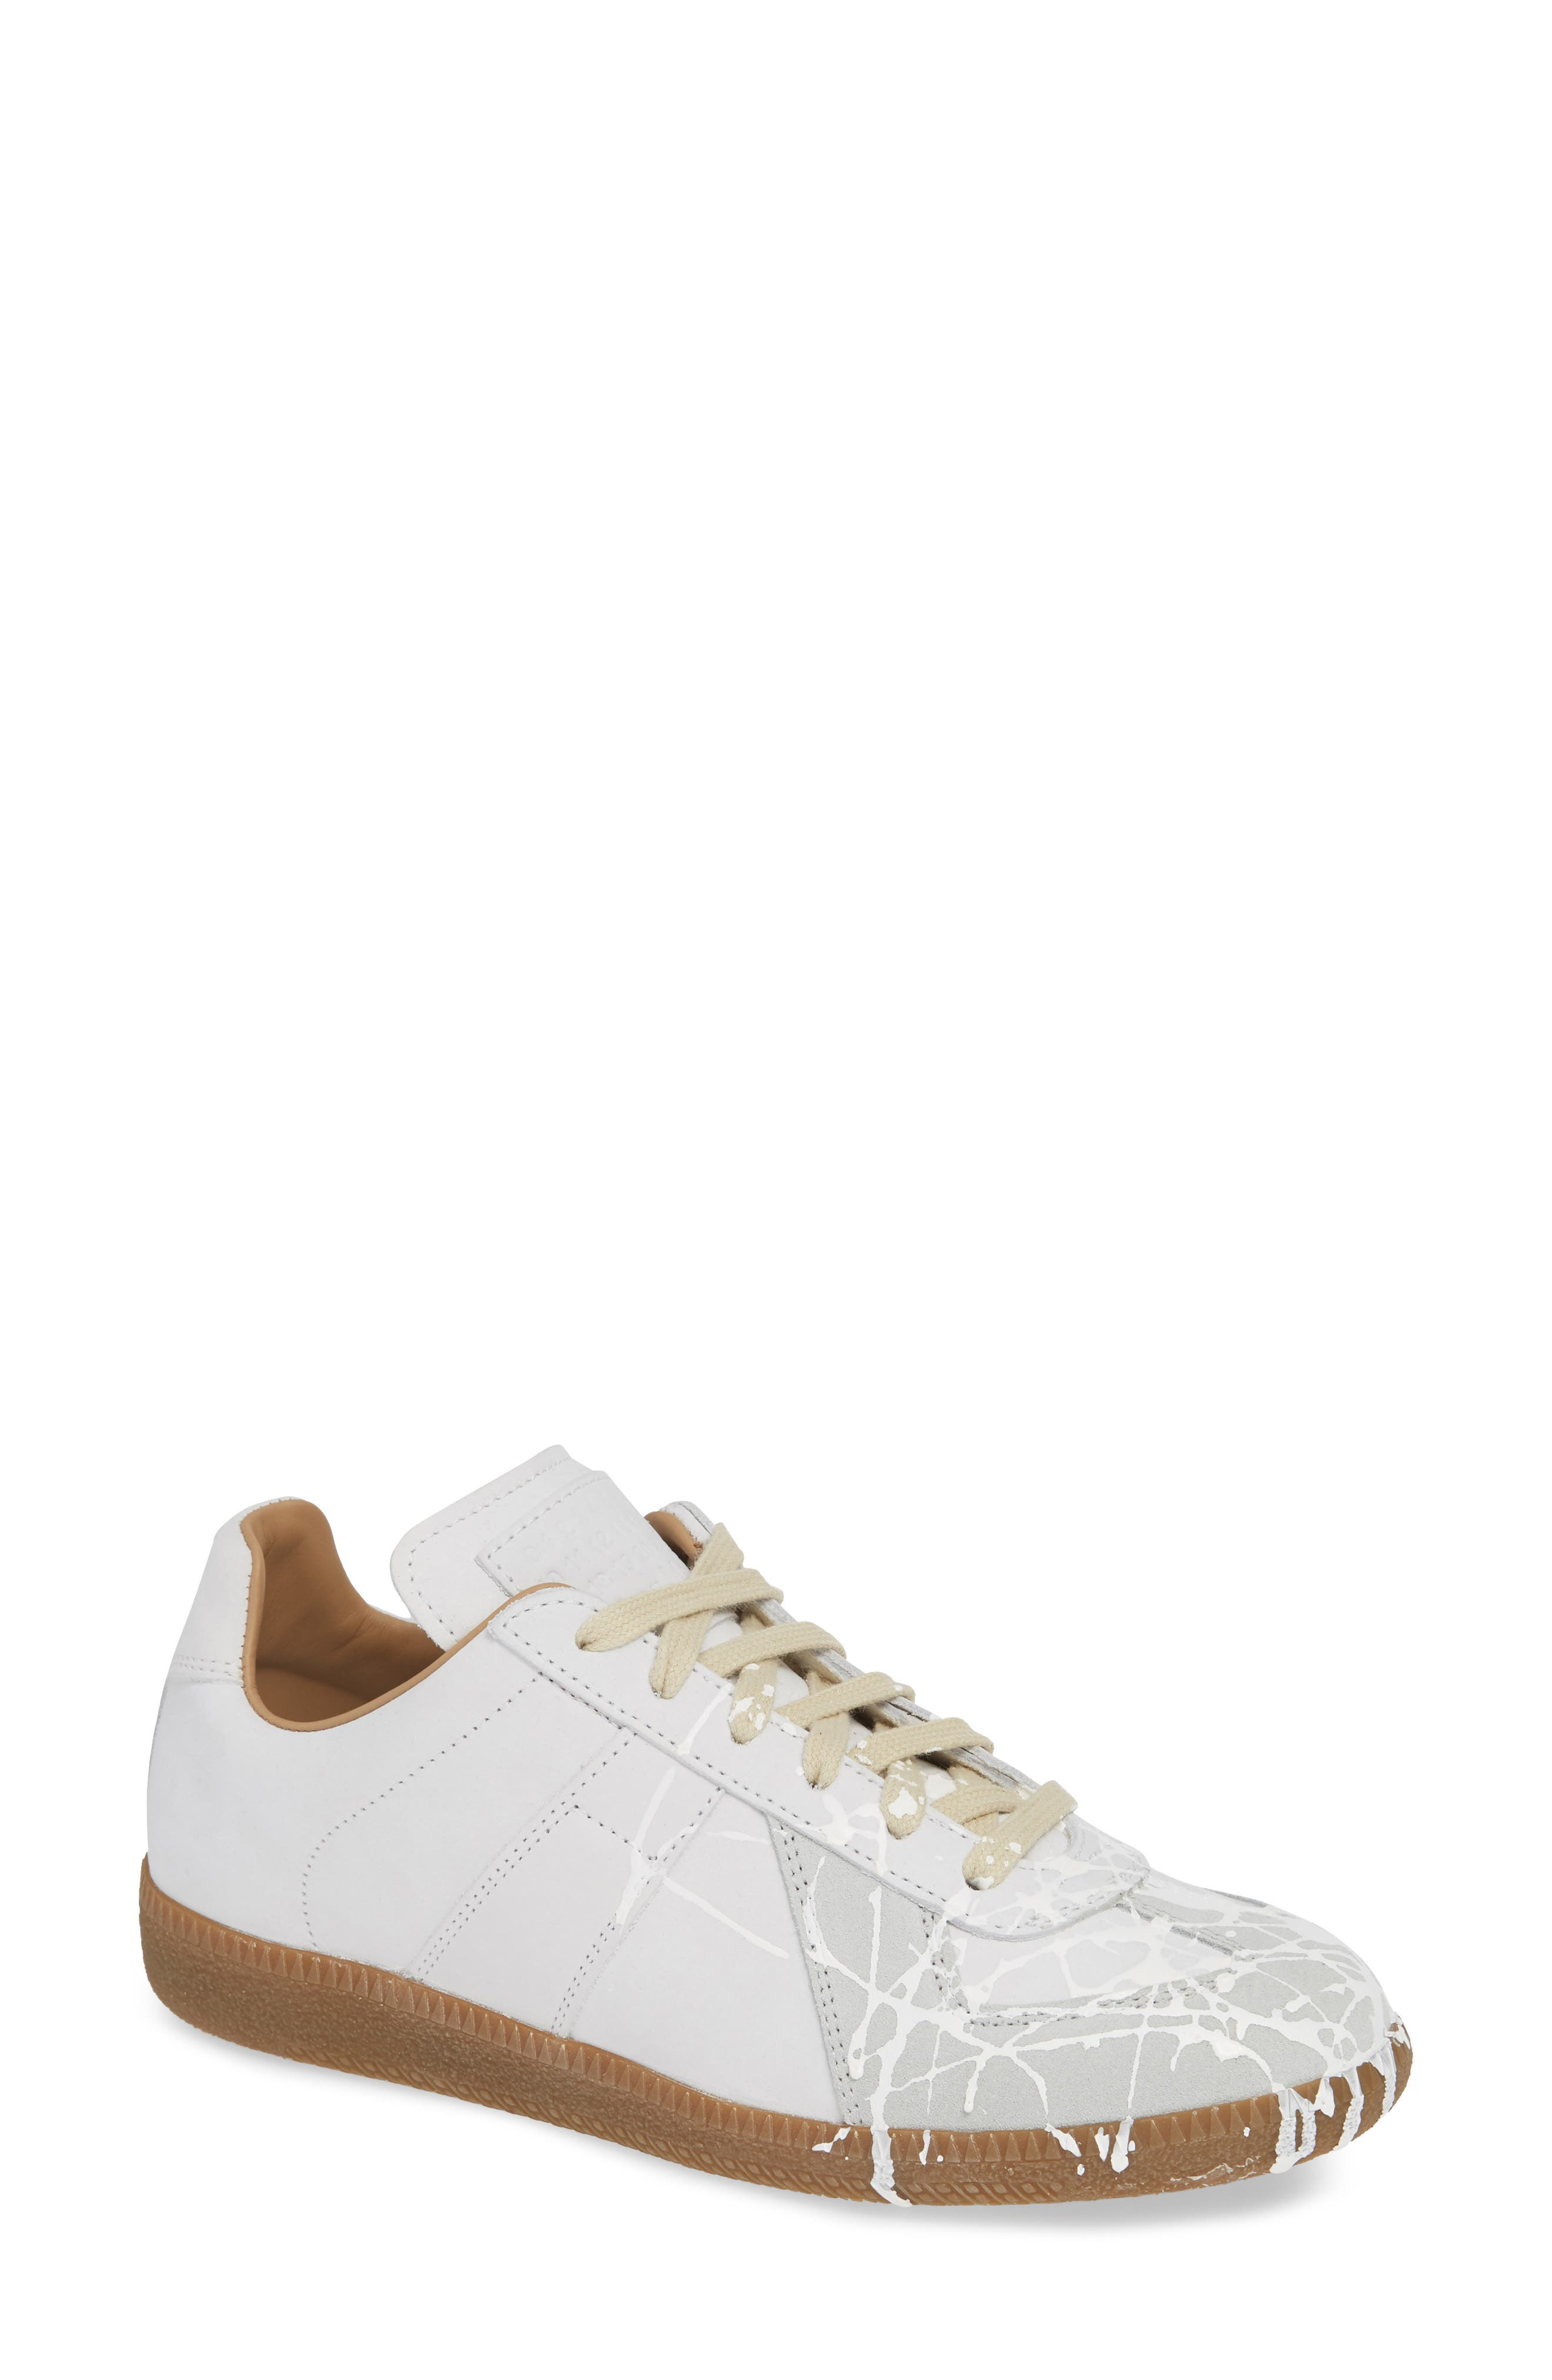 Replica Paint Splatter Sneaker,                         Main,                         color, WHITE